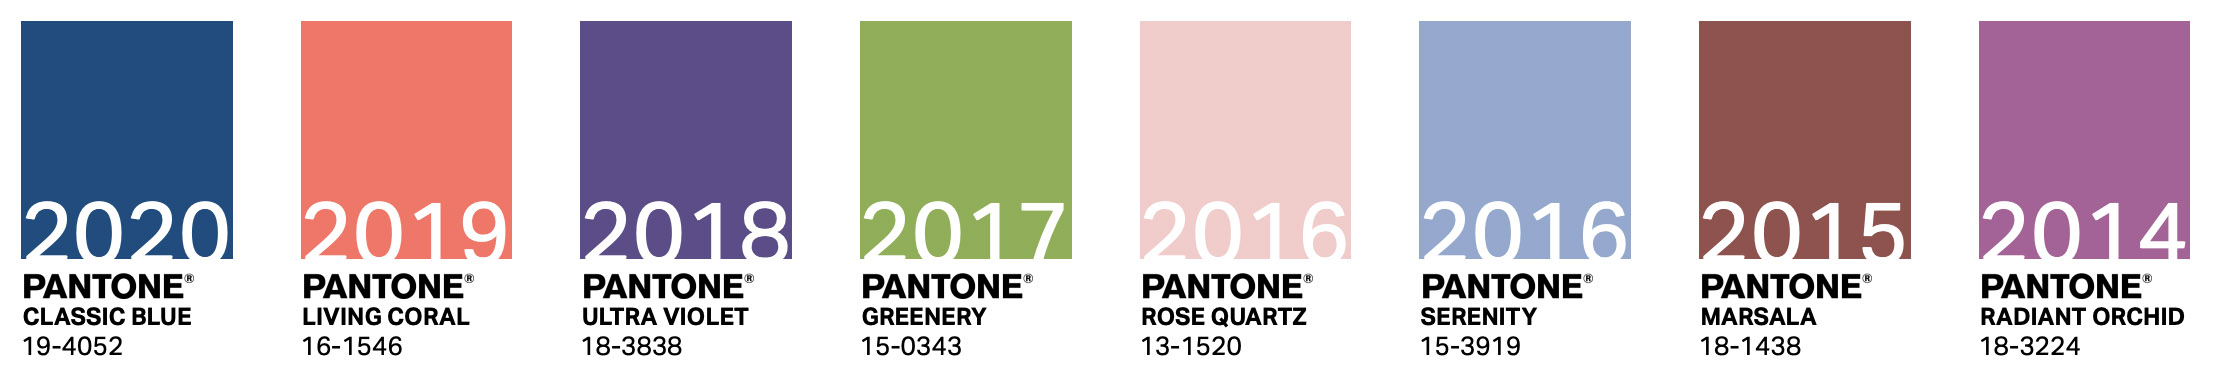 Color of the year 2020, 2019, 2018